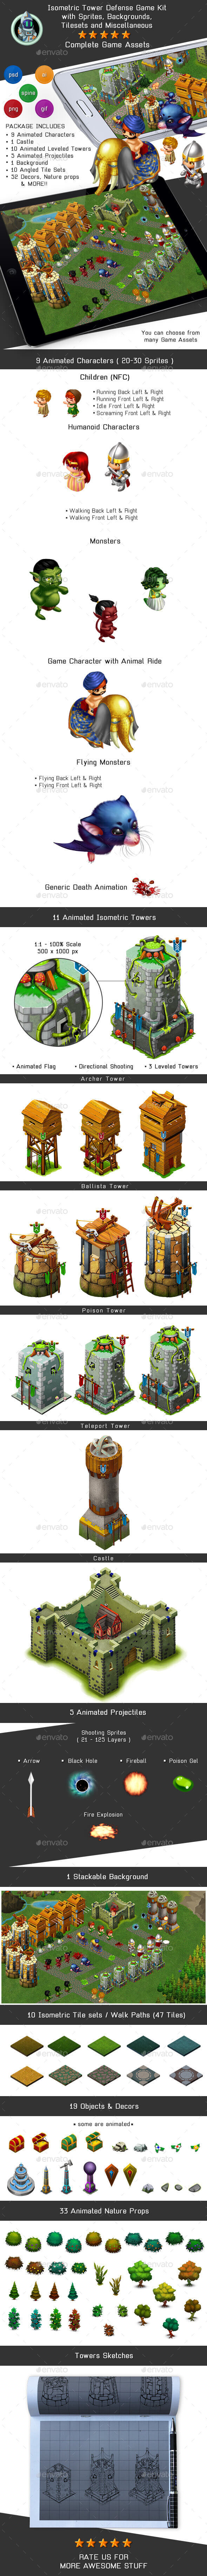 Isometric Tower Defense Game Kit 2 of 3 w character sprites & more - Game Kits Game Assets